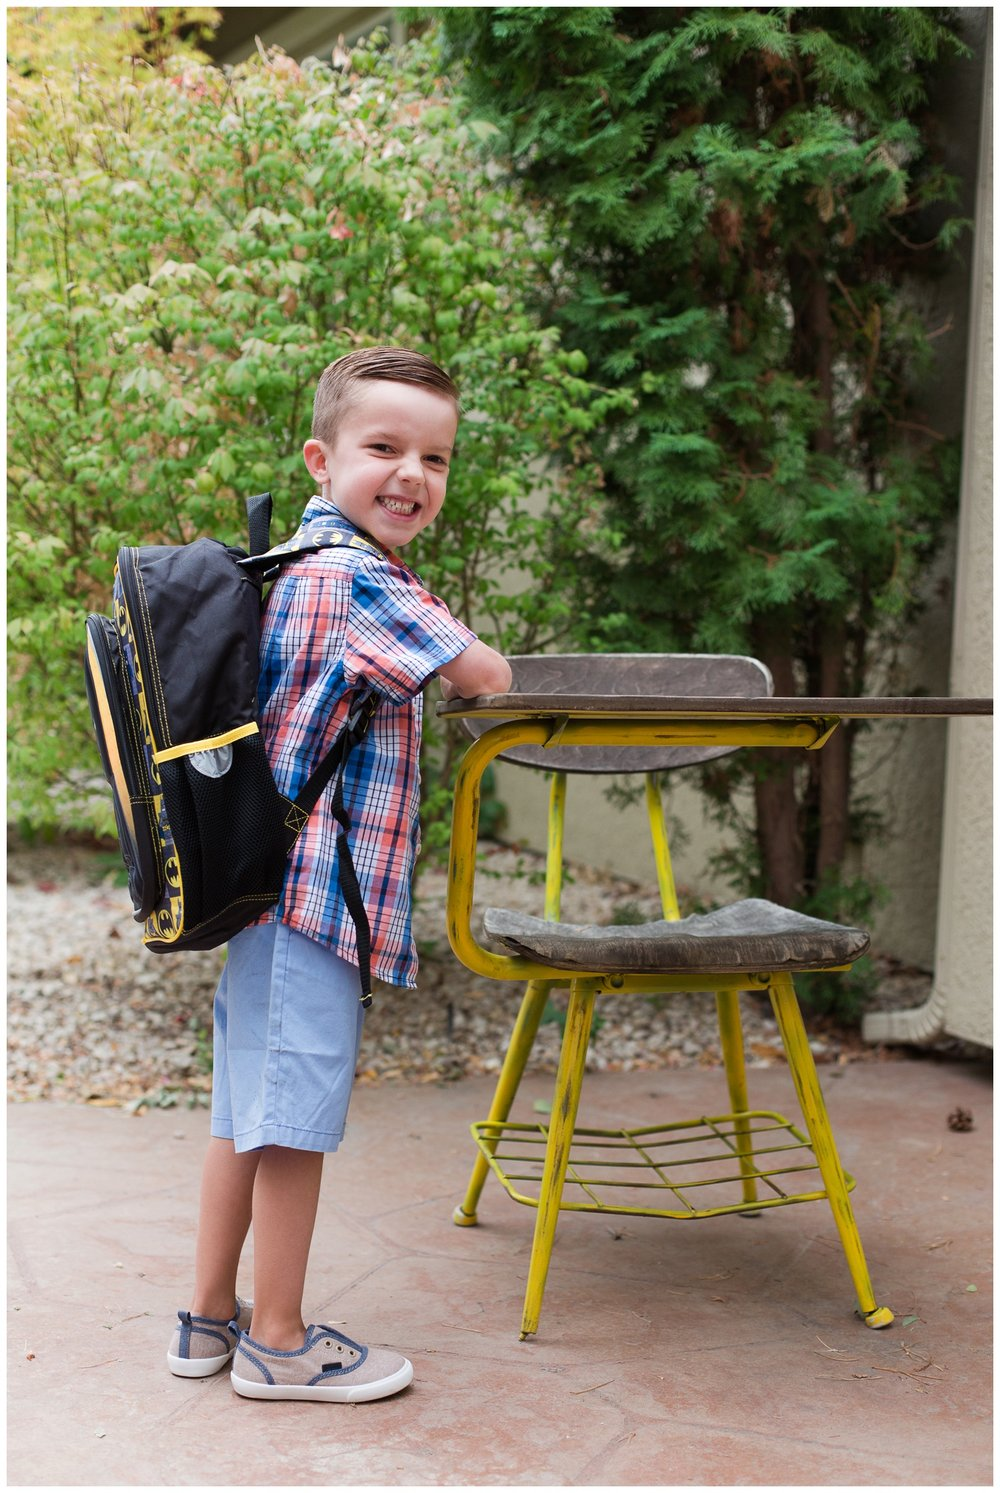 Oh my heart! Here is Declan on his first day of Kindergarten. We live in Sparks, NV and he goes to an amazing little school here and has the sweetest teacher BUT this was the FIRST day before I knew everything was going to be okay and my heart was breaking on the inside a little knowing I was going to be counting every hour until he came home.